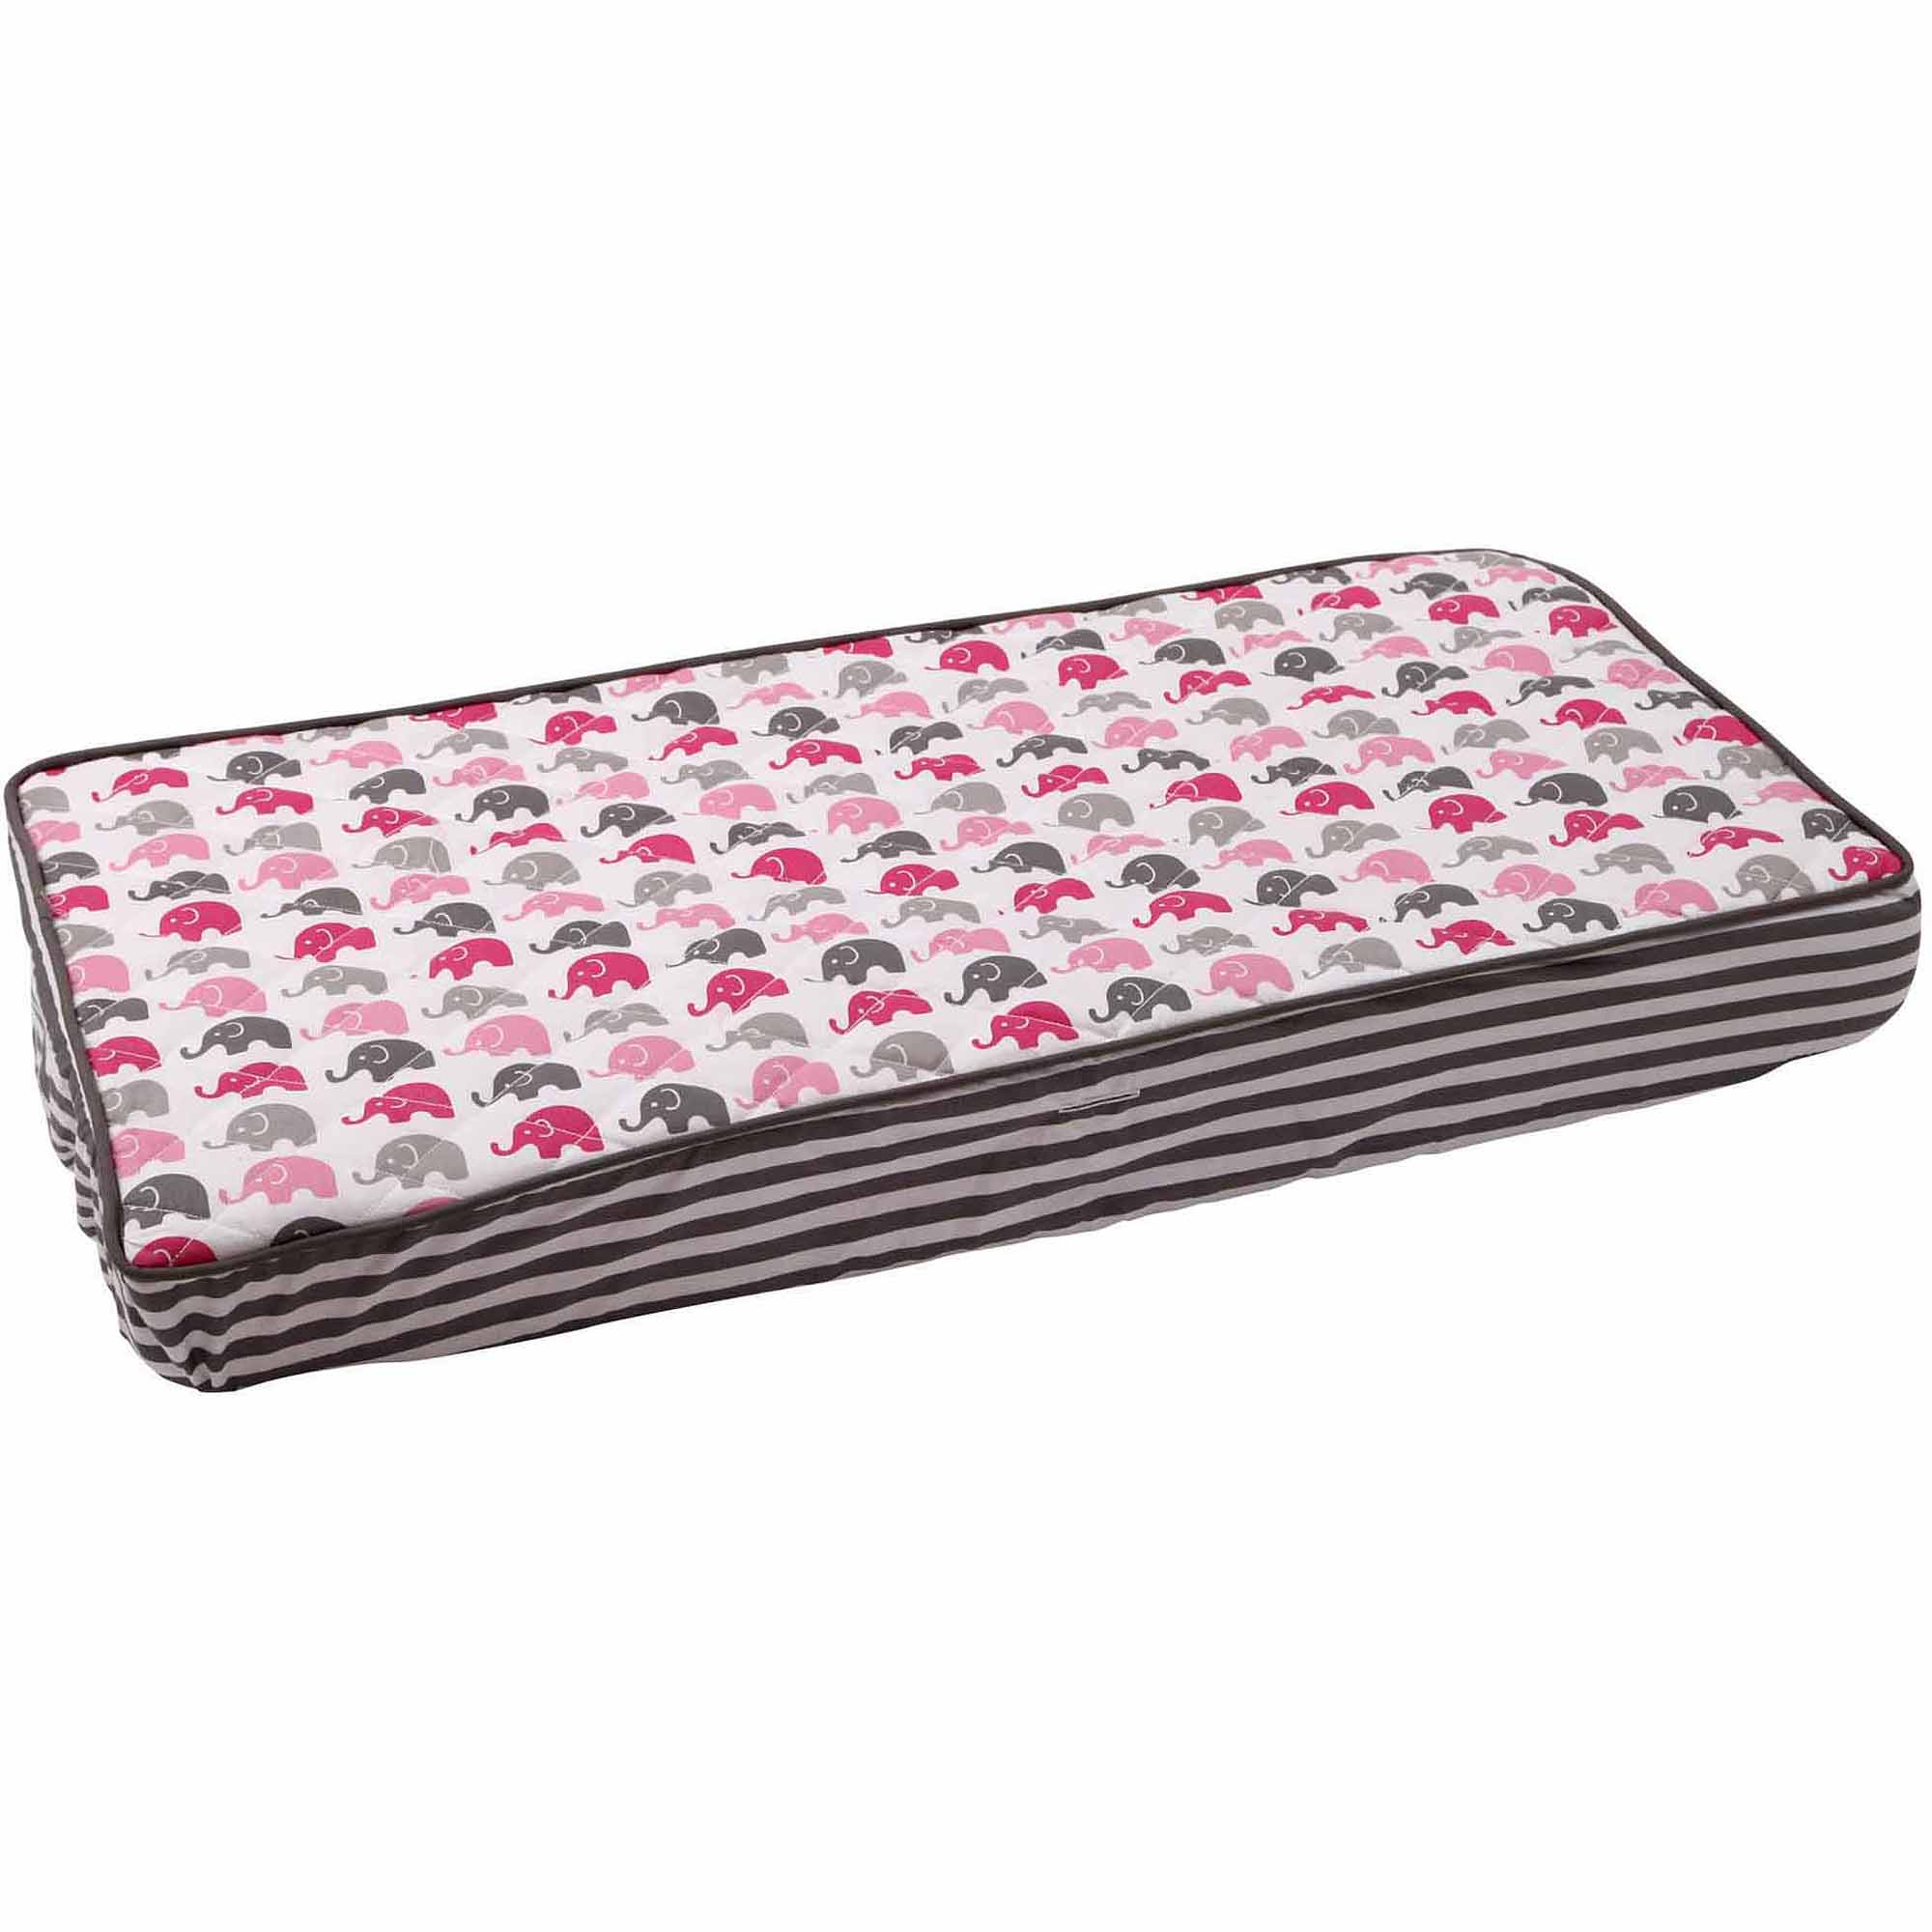 Bacati Elephants Mini Bacati Elephants Changing Pad Cover, Pink/Gray